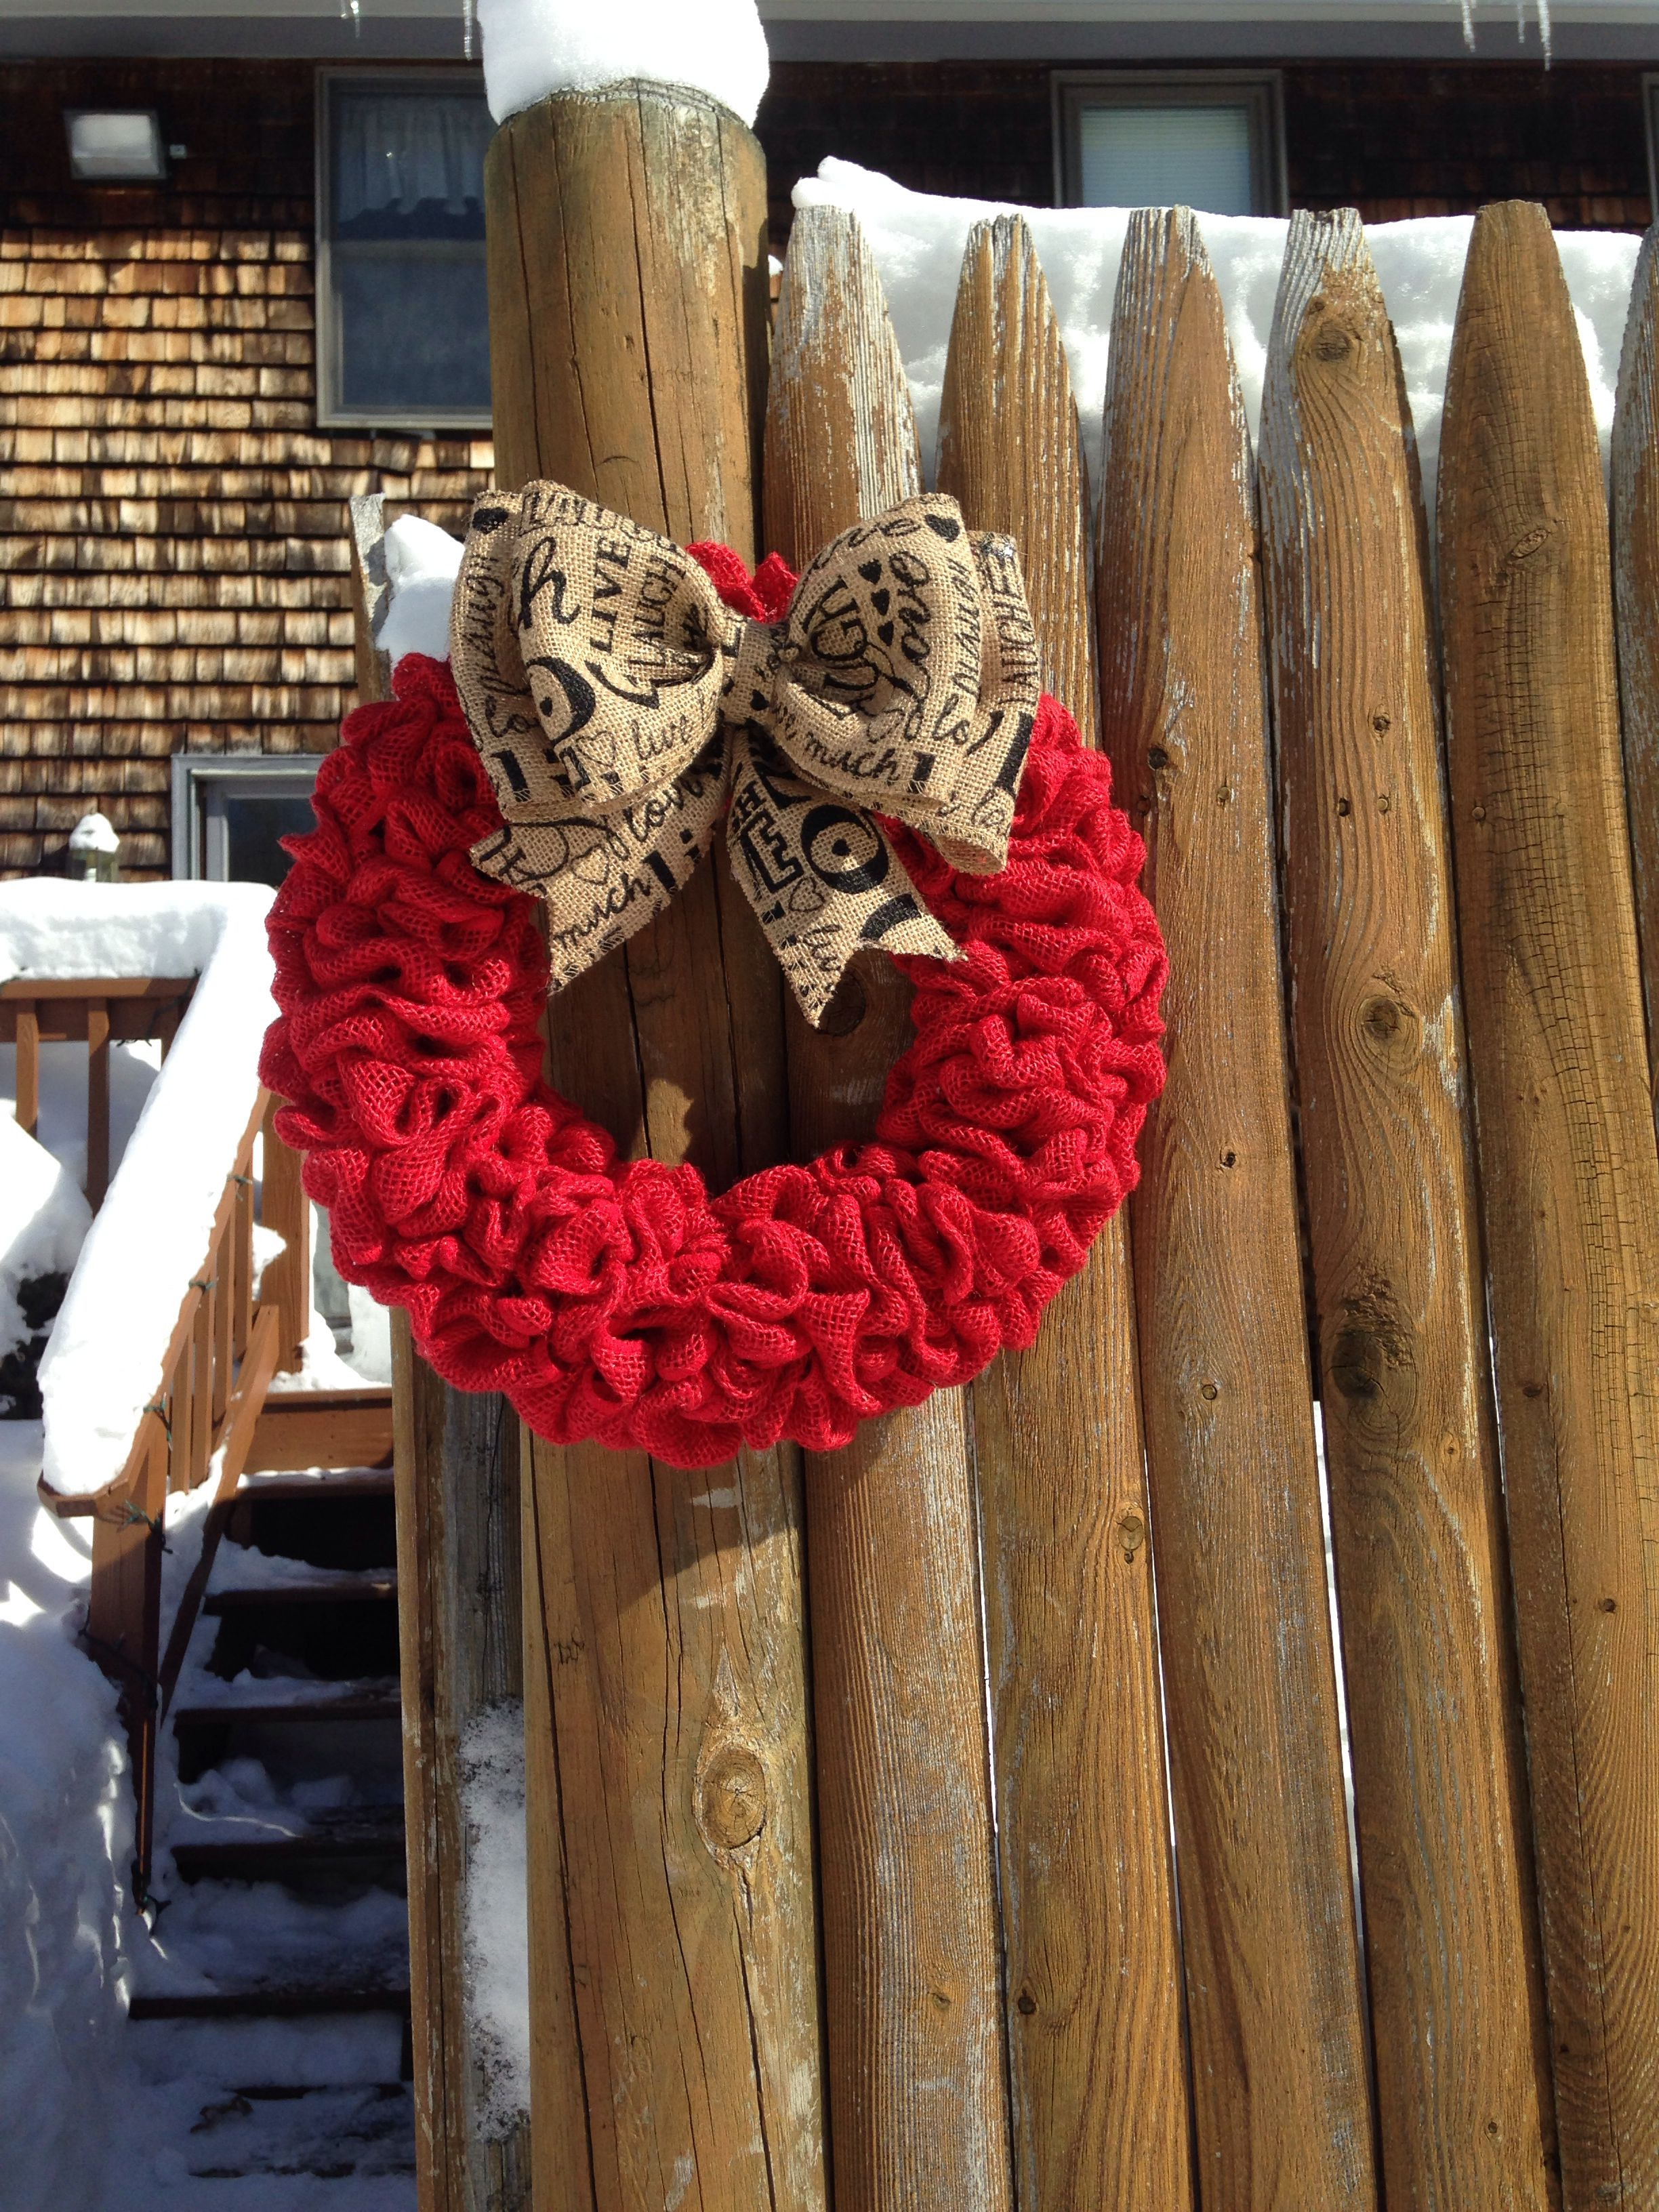 Live, Laugh, and Love burlap wreath